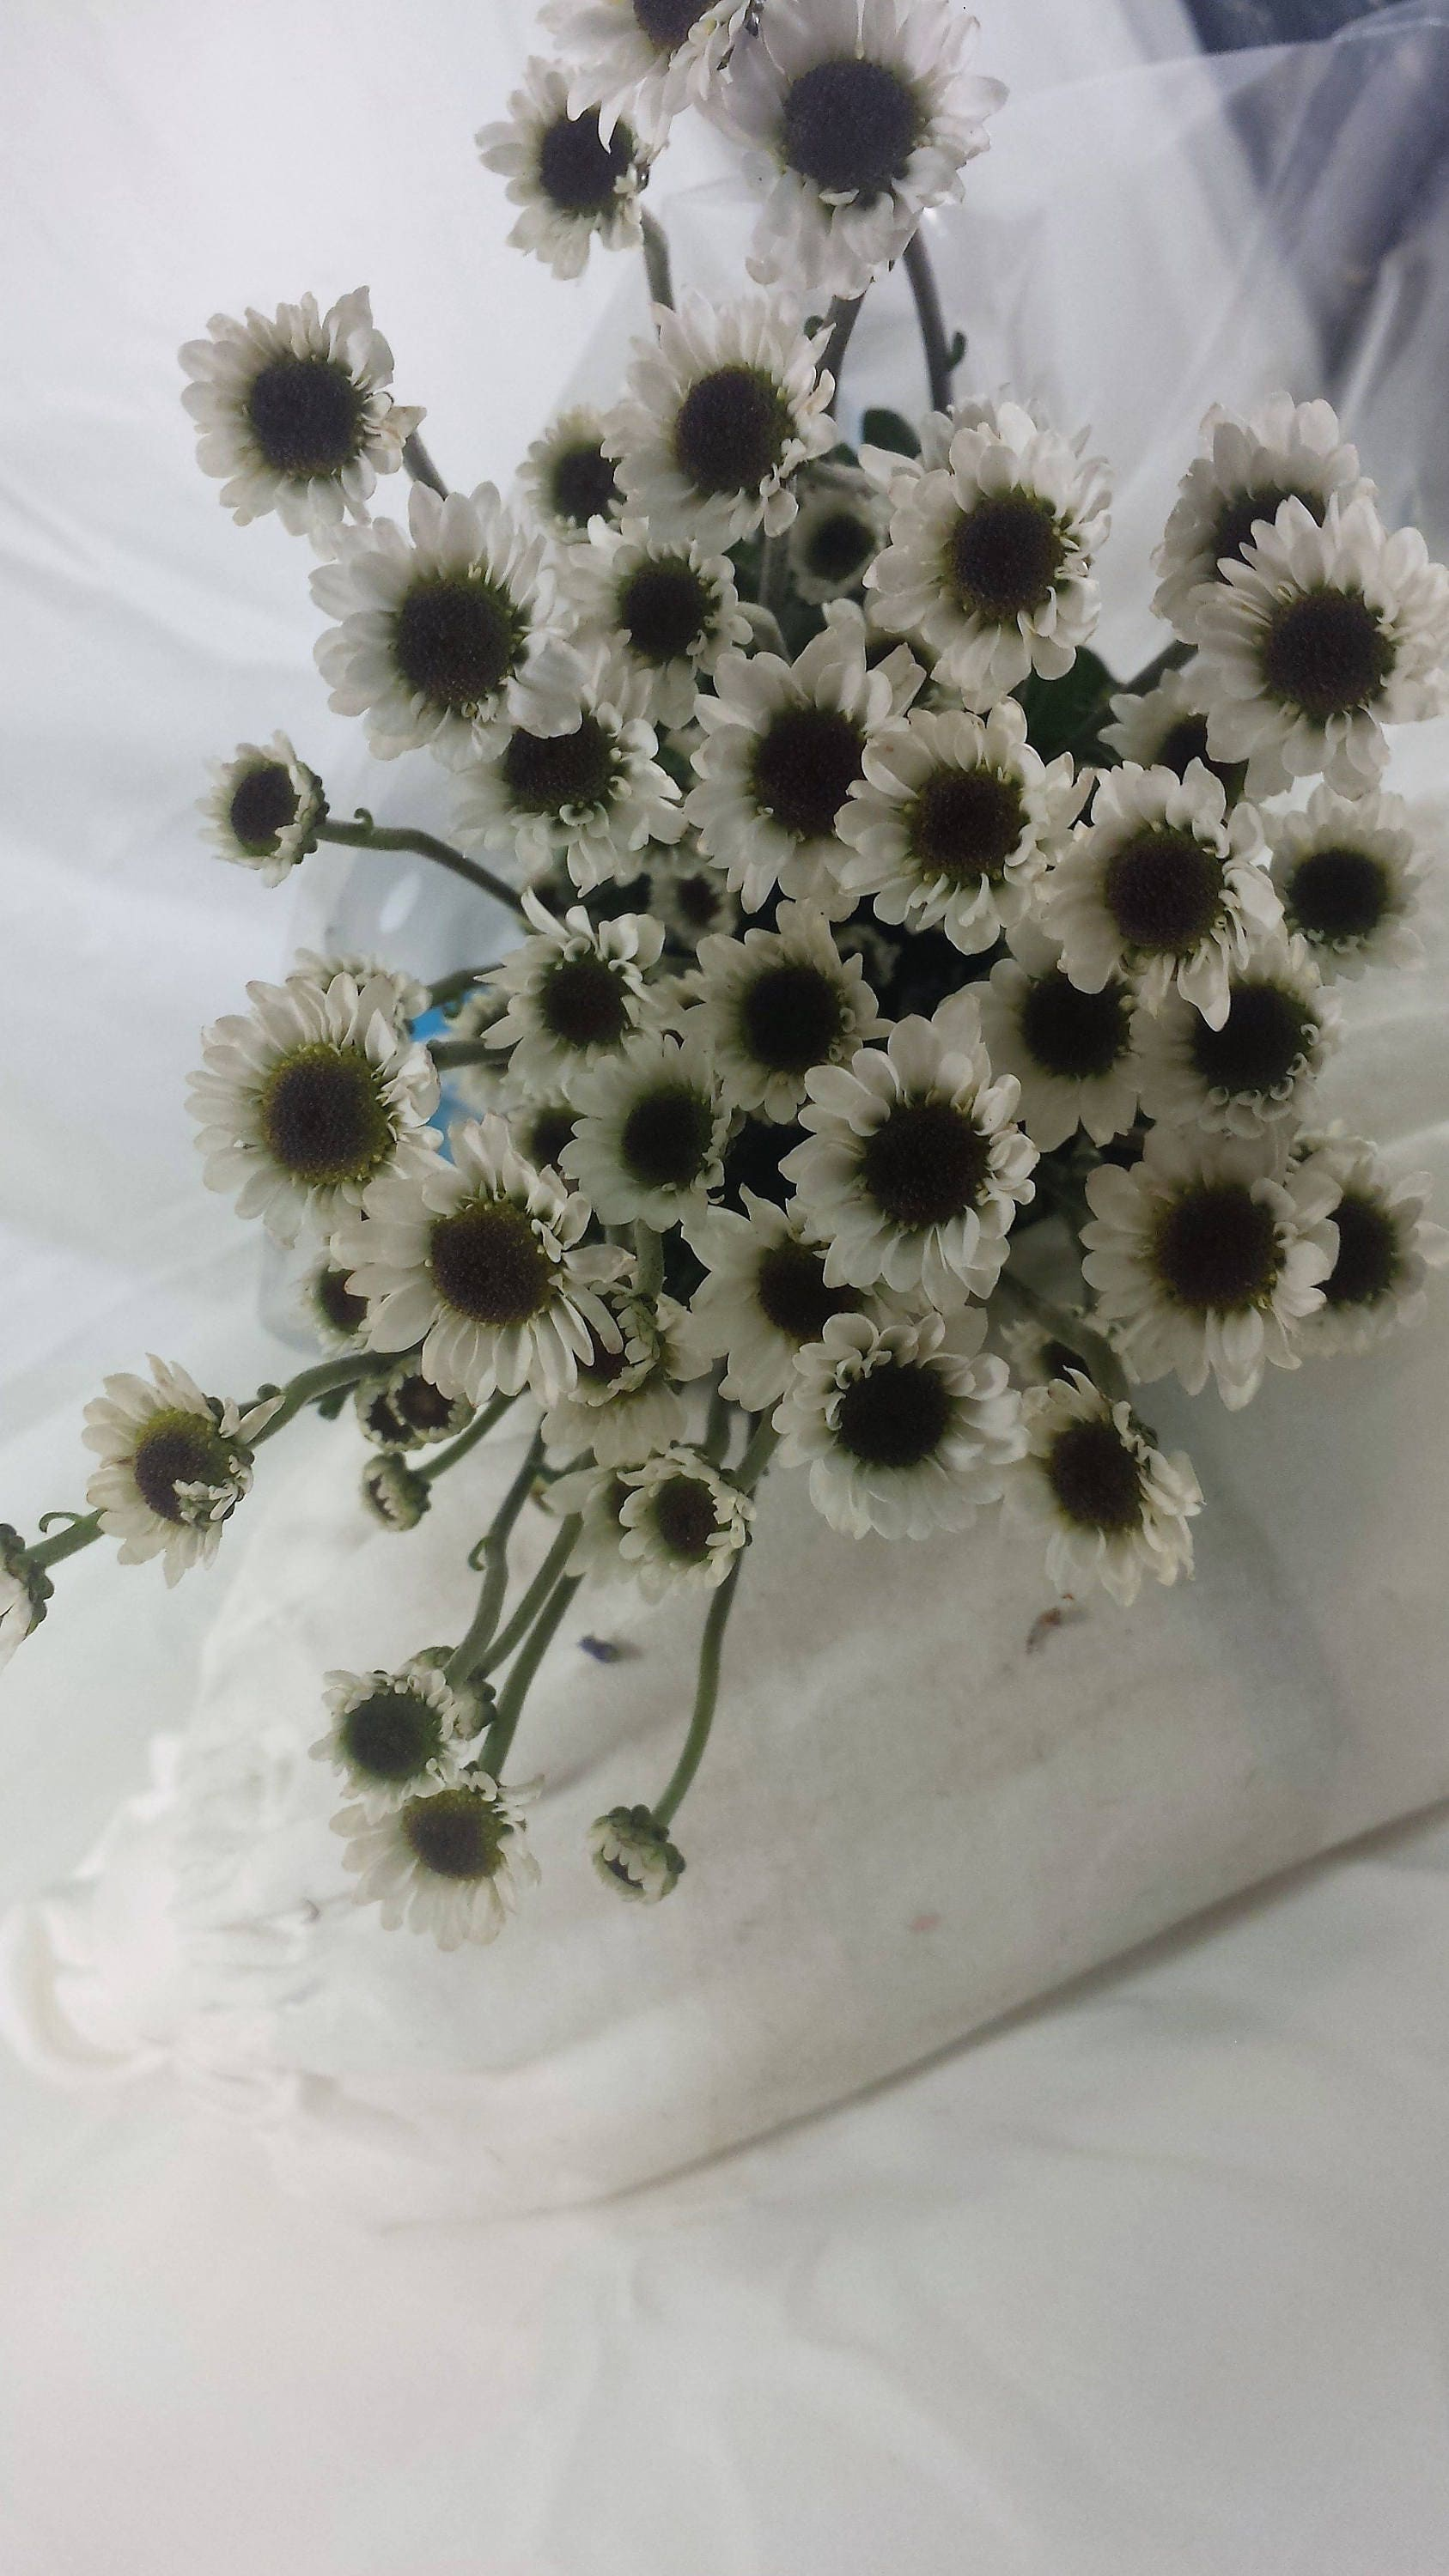 Fresh Bouquet White Daisy Black Center 7 Stem Bunch Etsy